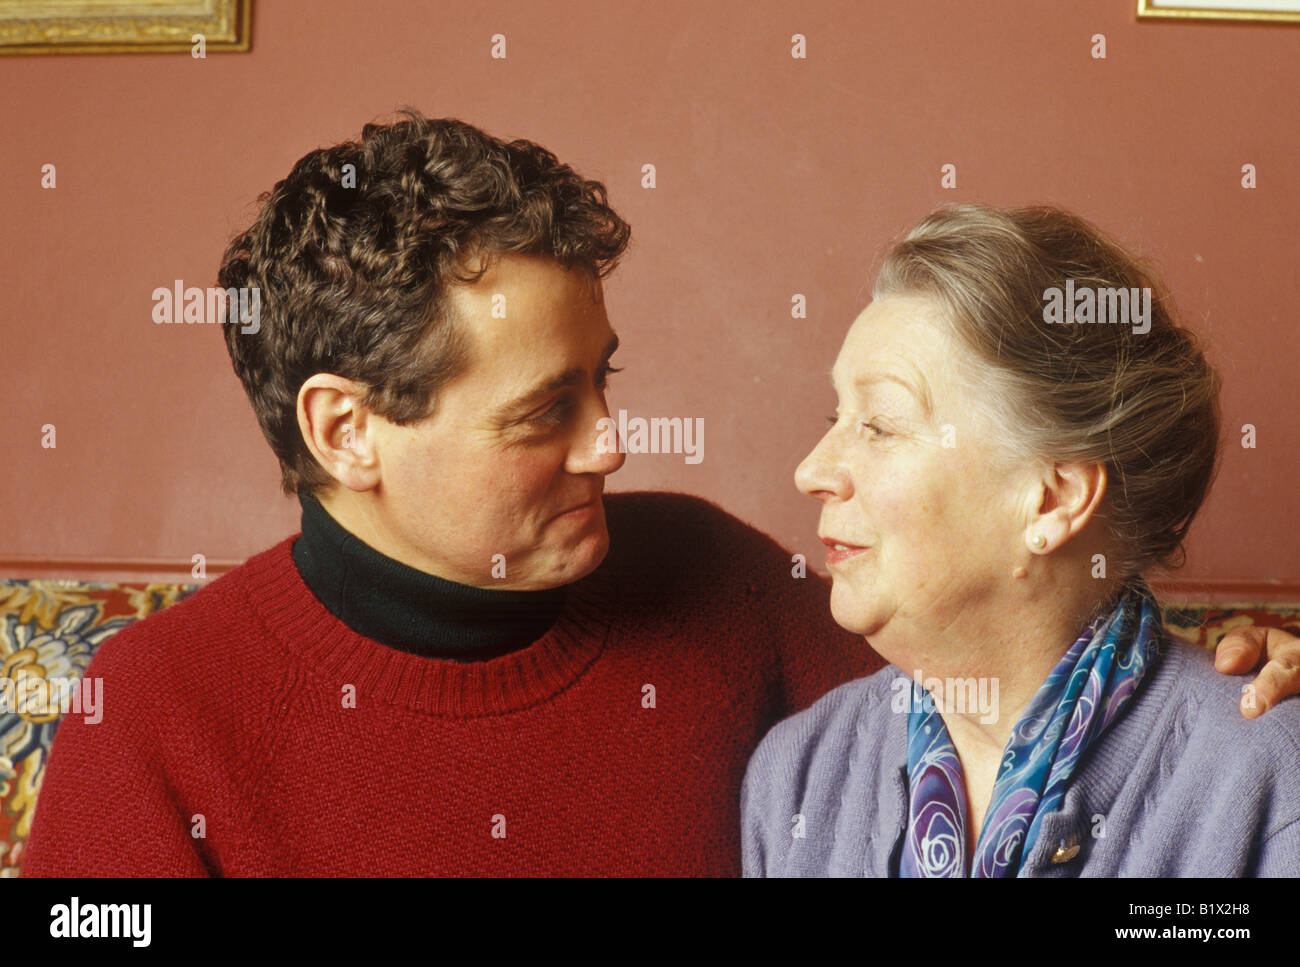 younger man looking at an older woman - Stock Image